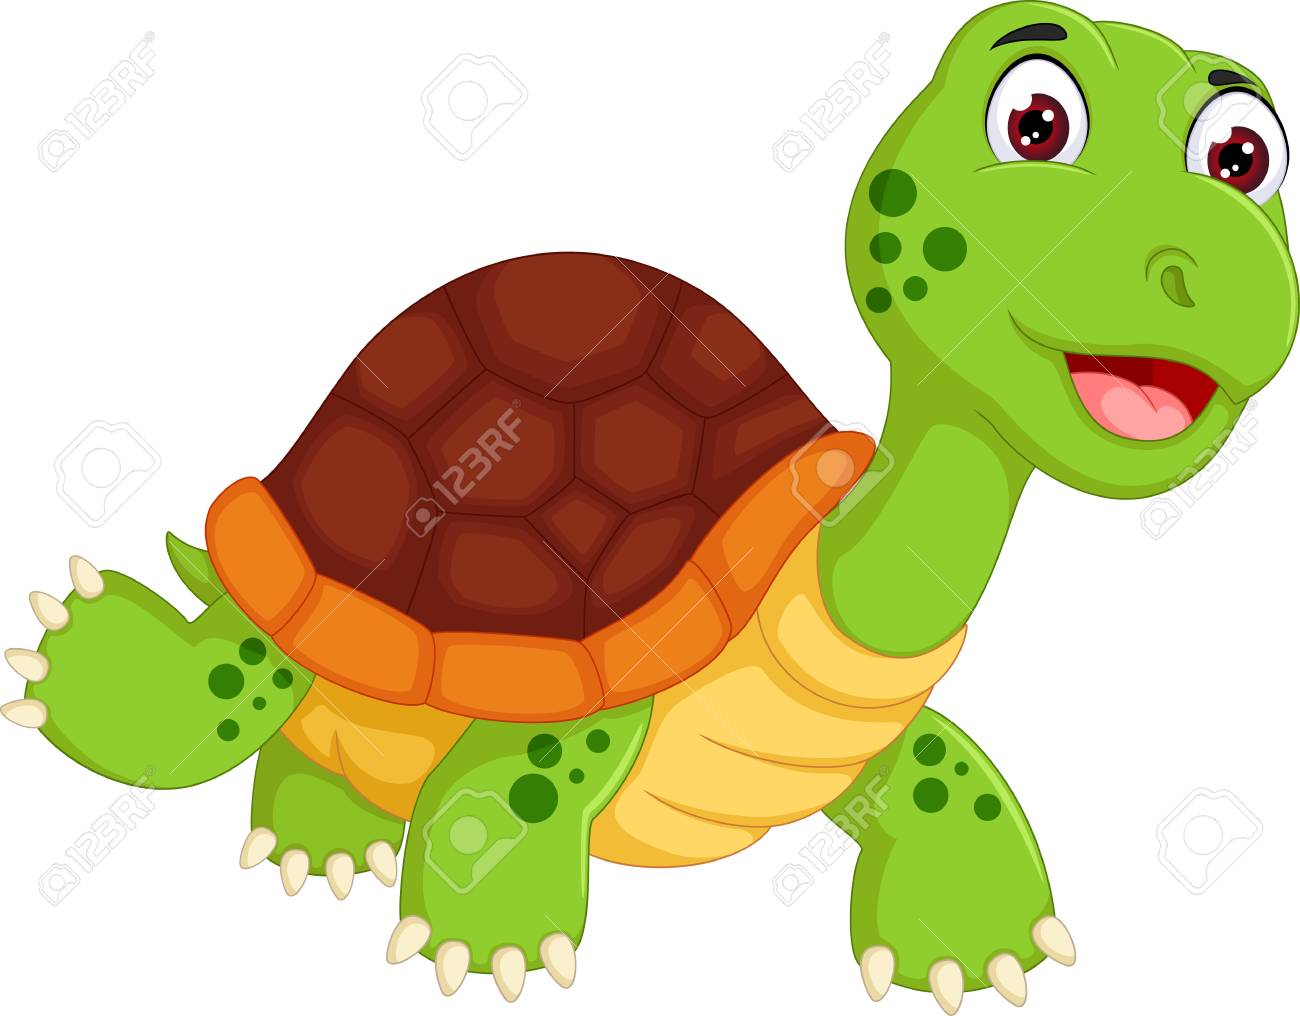 Funny turtle cartoon walking with laughing - 87925337